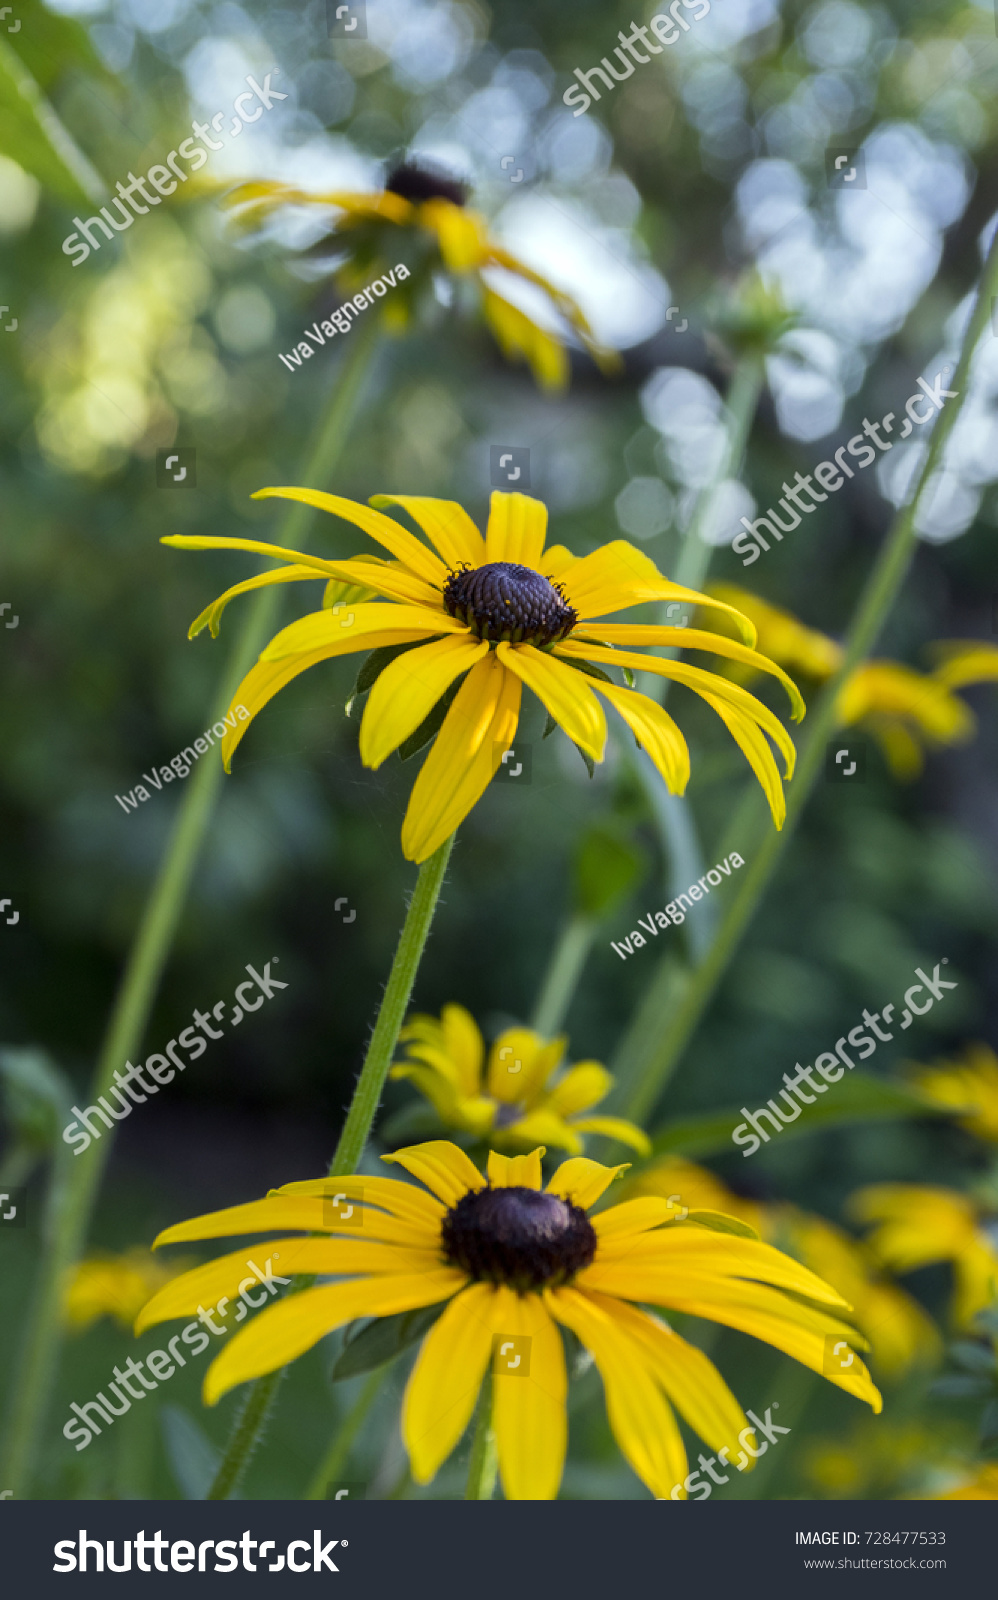 Rudbeckia Hirta Yellow Flower With Black Brown Centre In Bloom